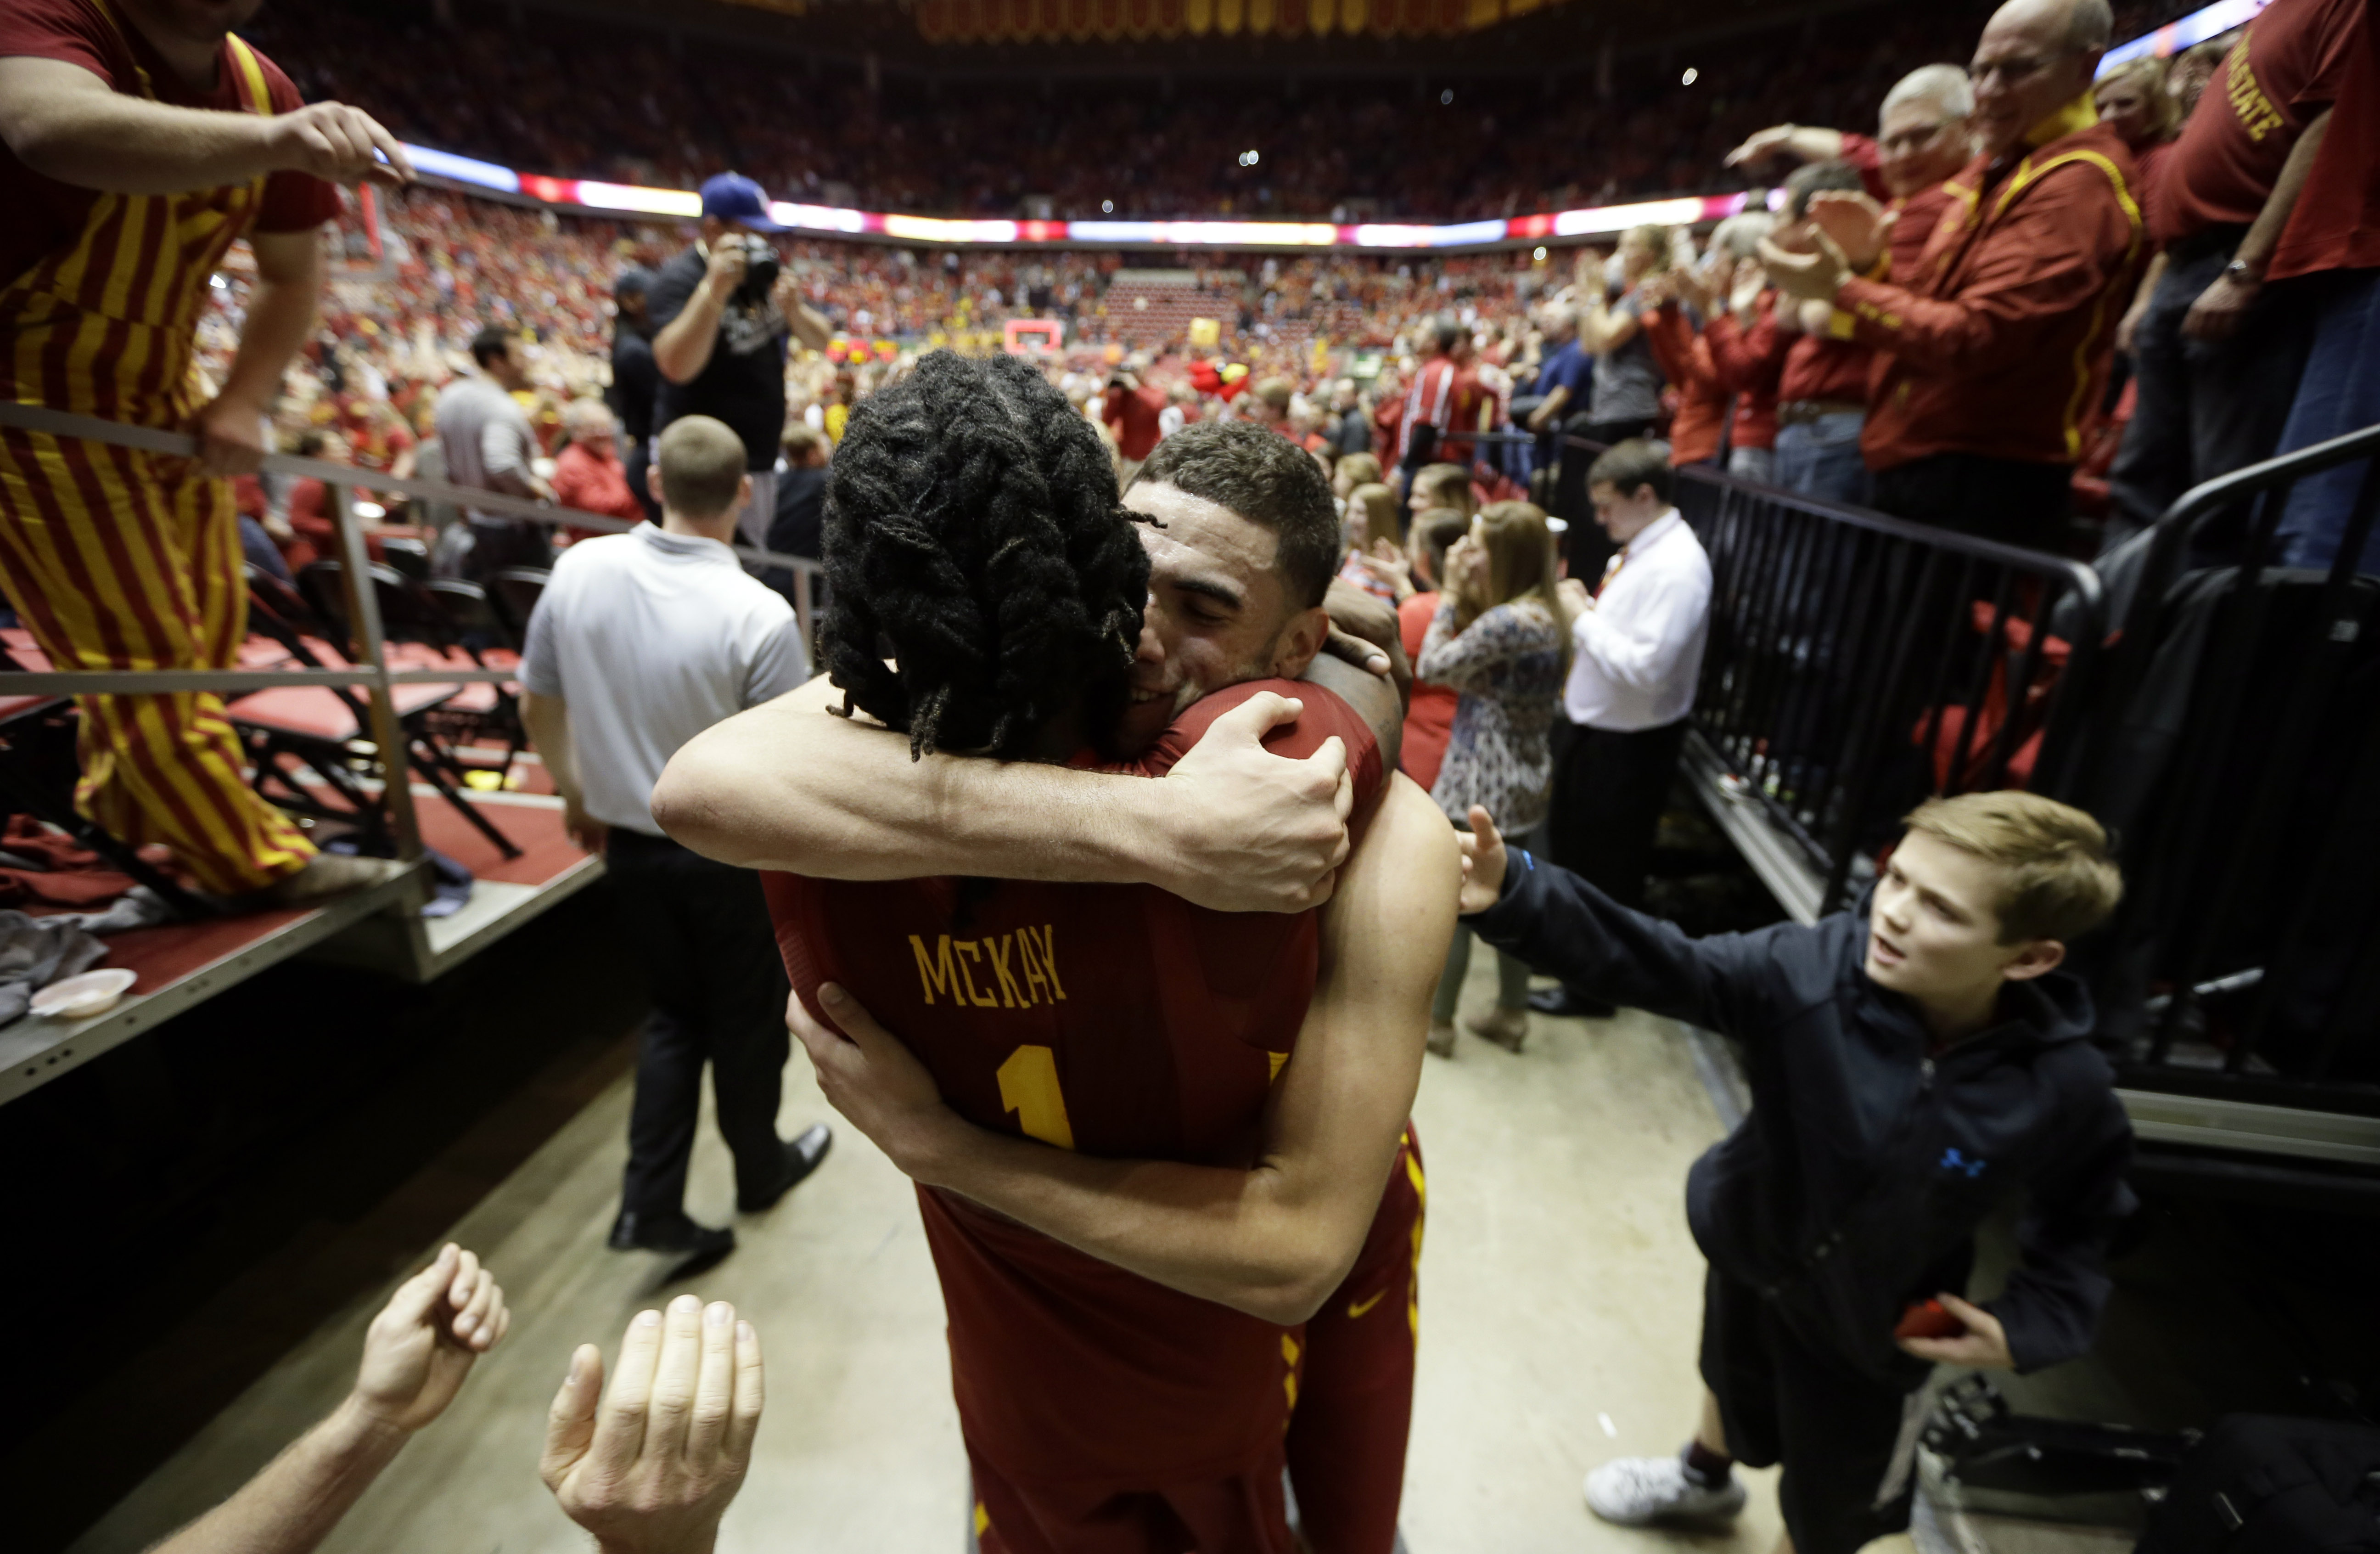 Iowa State forward Georges Niang celebrates with teammate Jameel McKay, left, after an NCAA college basketball game against Iowa, Thursday, Dec. 10, 2015, in Ames, Iowa. Iowa State won 83-82. (AP Photo/Charlie Neibergall)